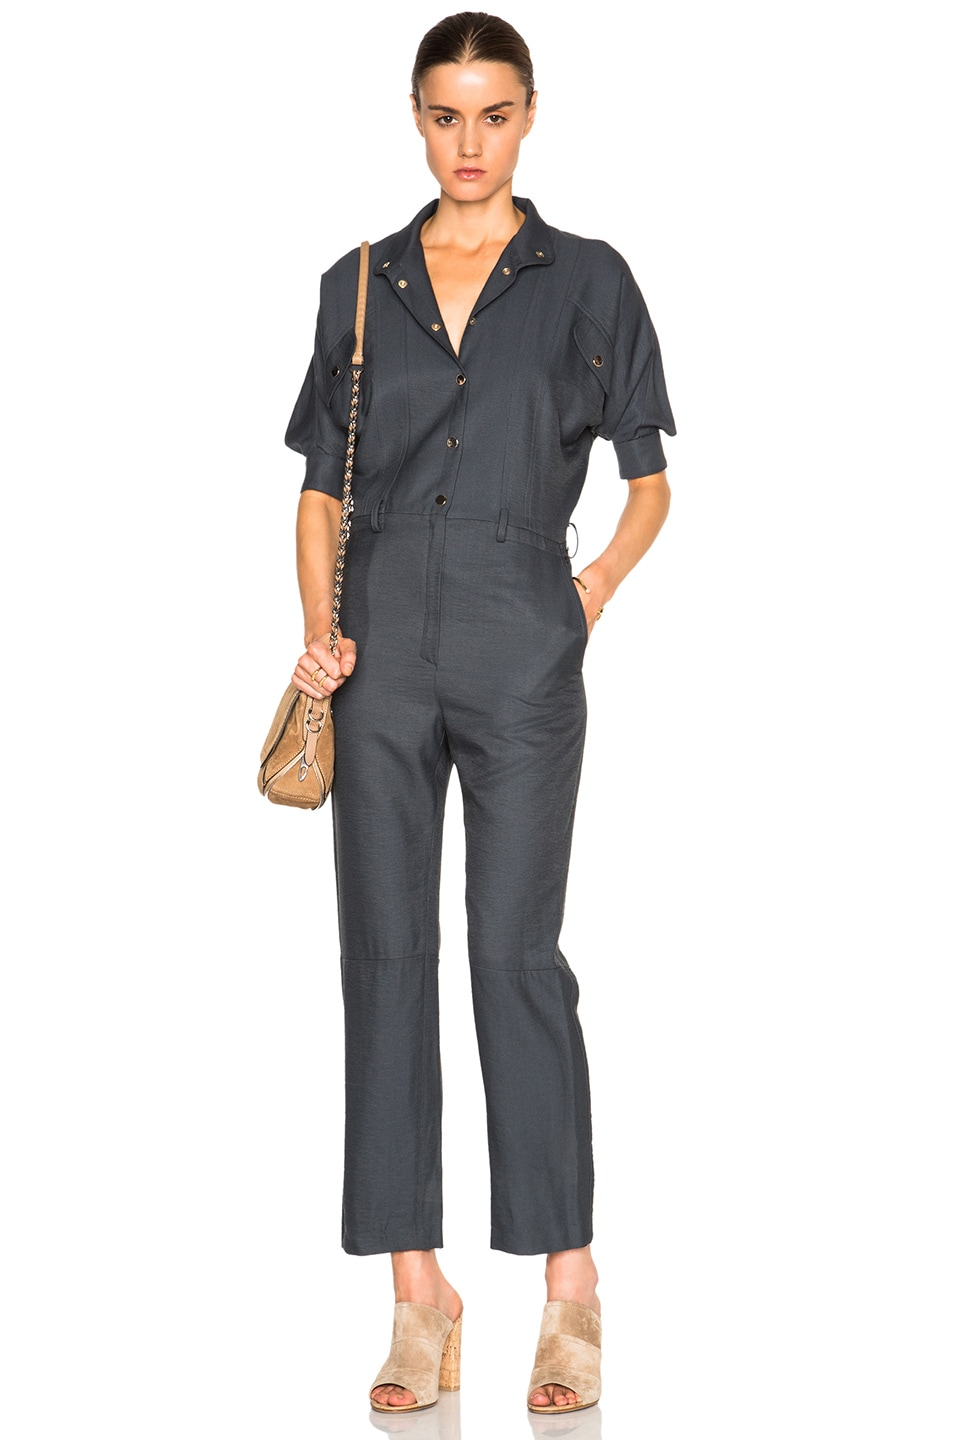 Image 1 of Carolina Ritz Charles 85 Jumpsuit in Blue